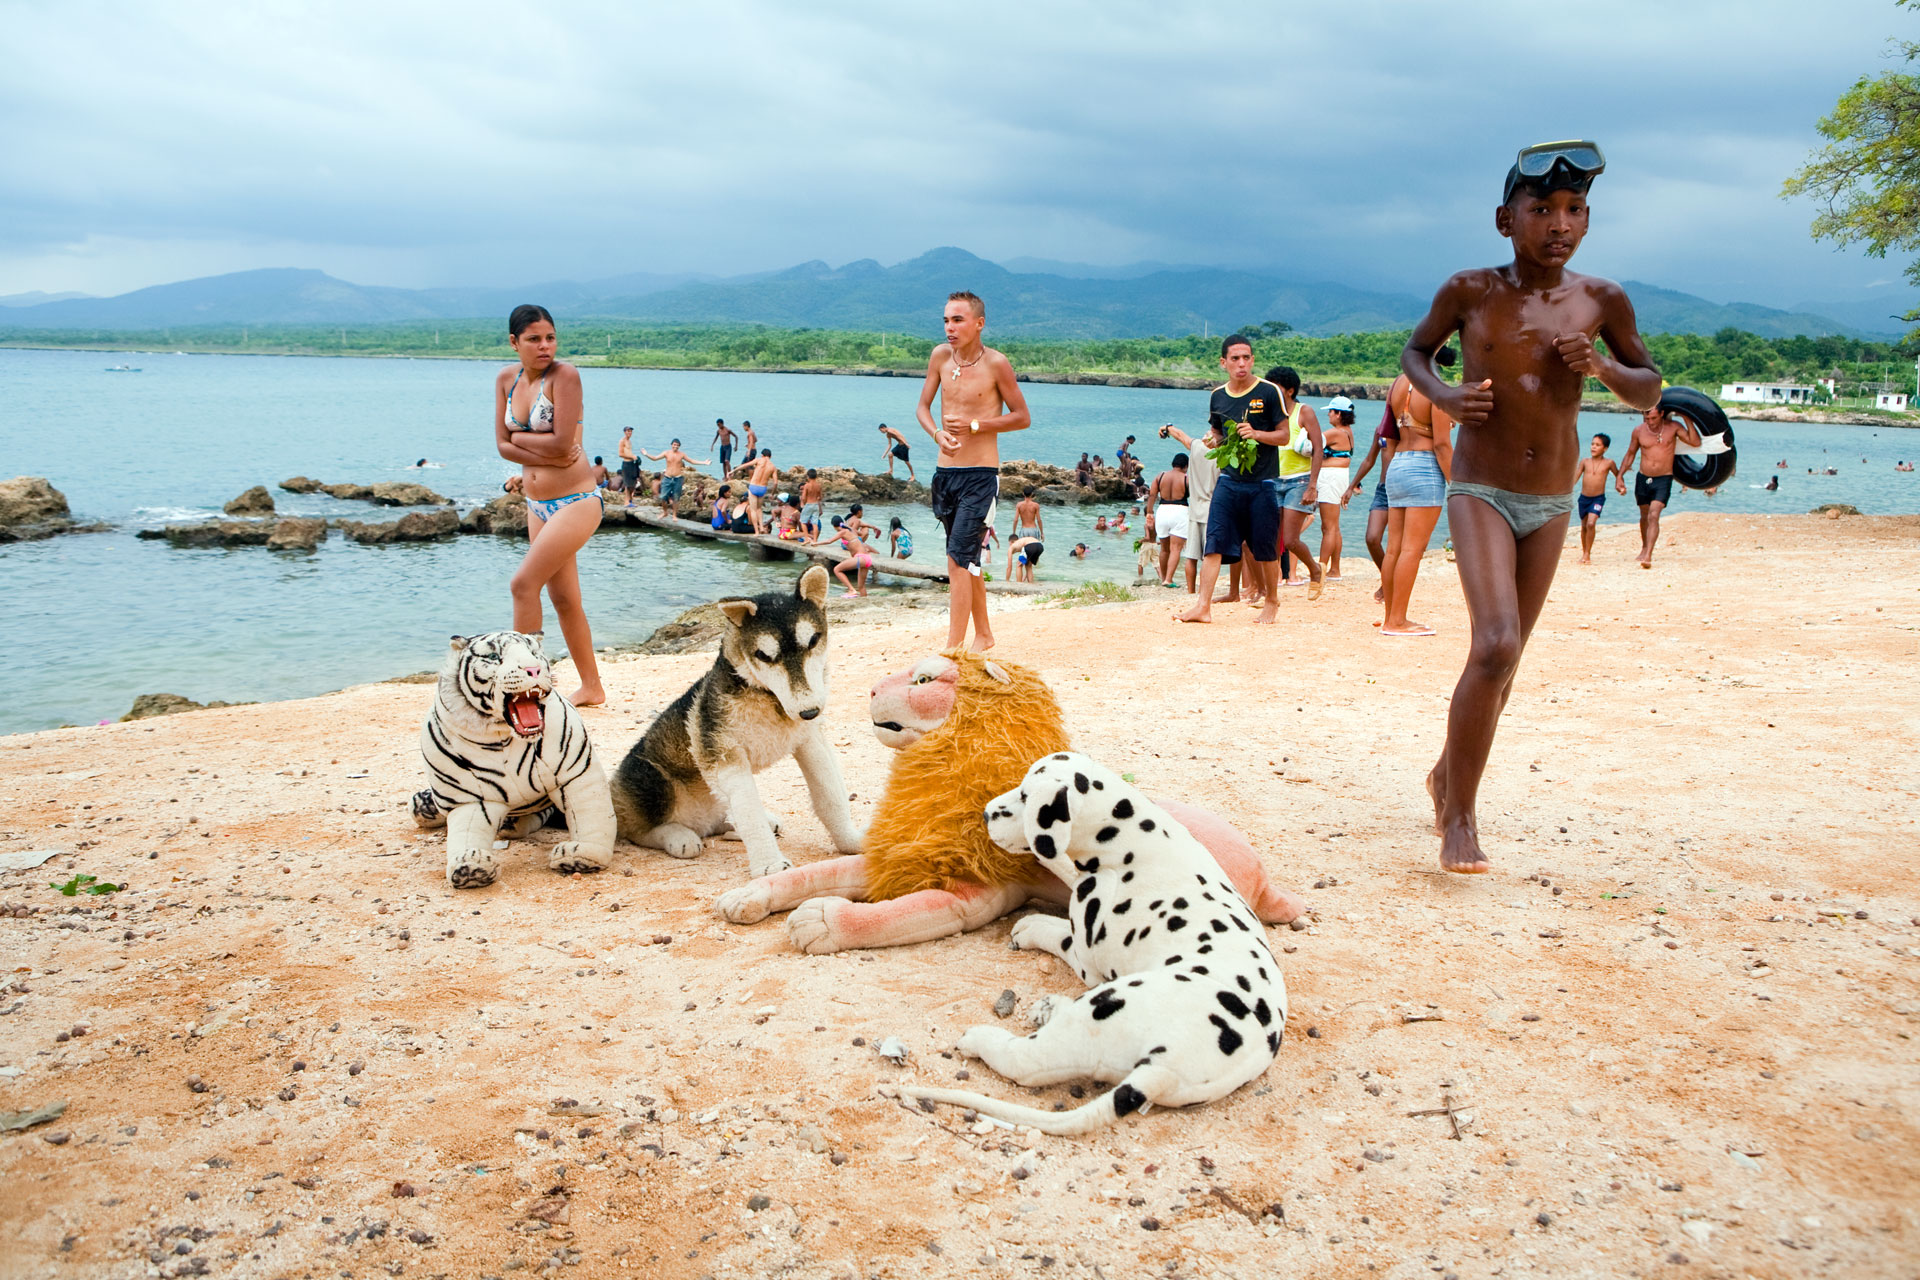 Jason Florio photography - color image of children on a beach in Cuba, with large stuffed animals, against a blue stormy sky